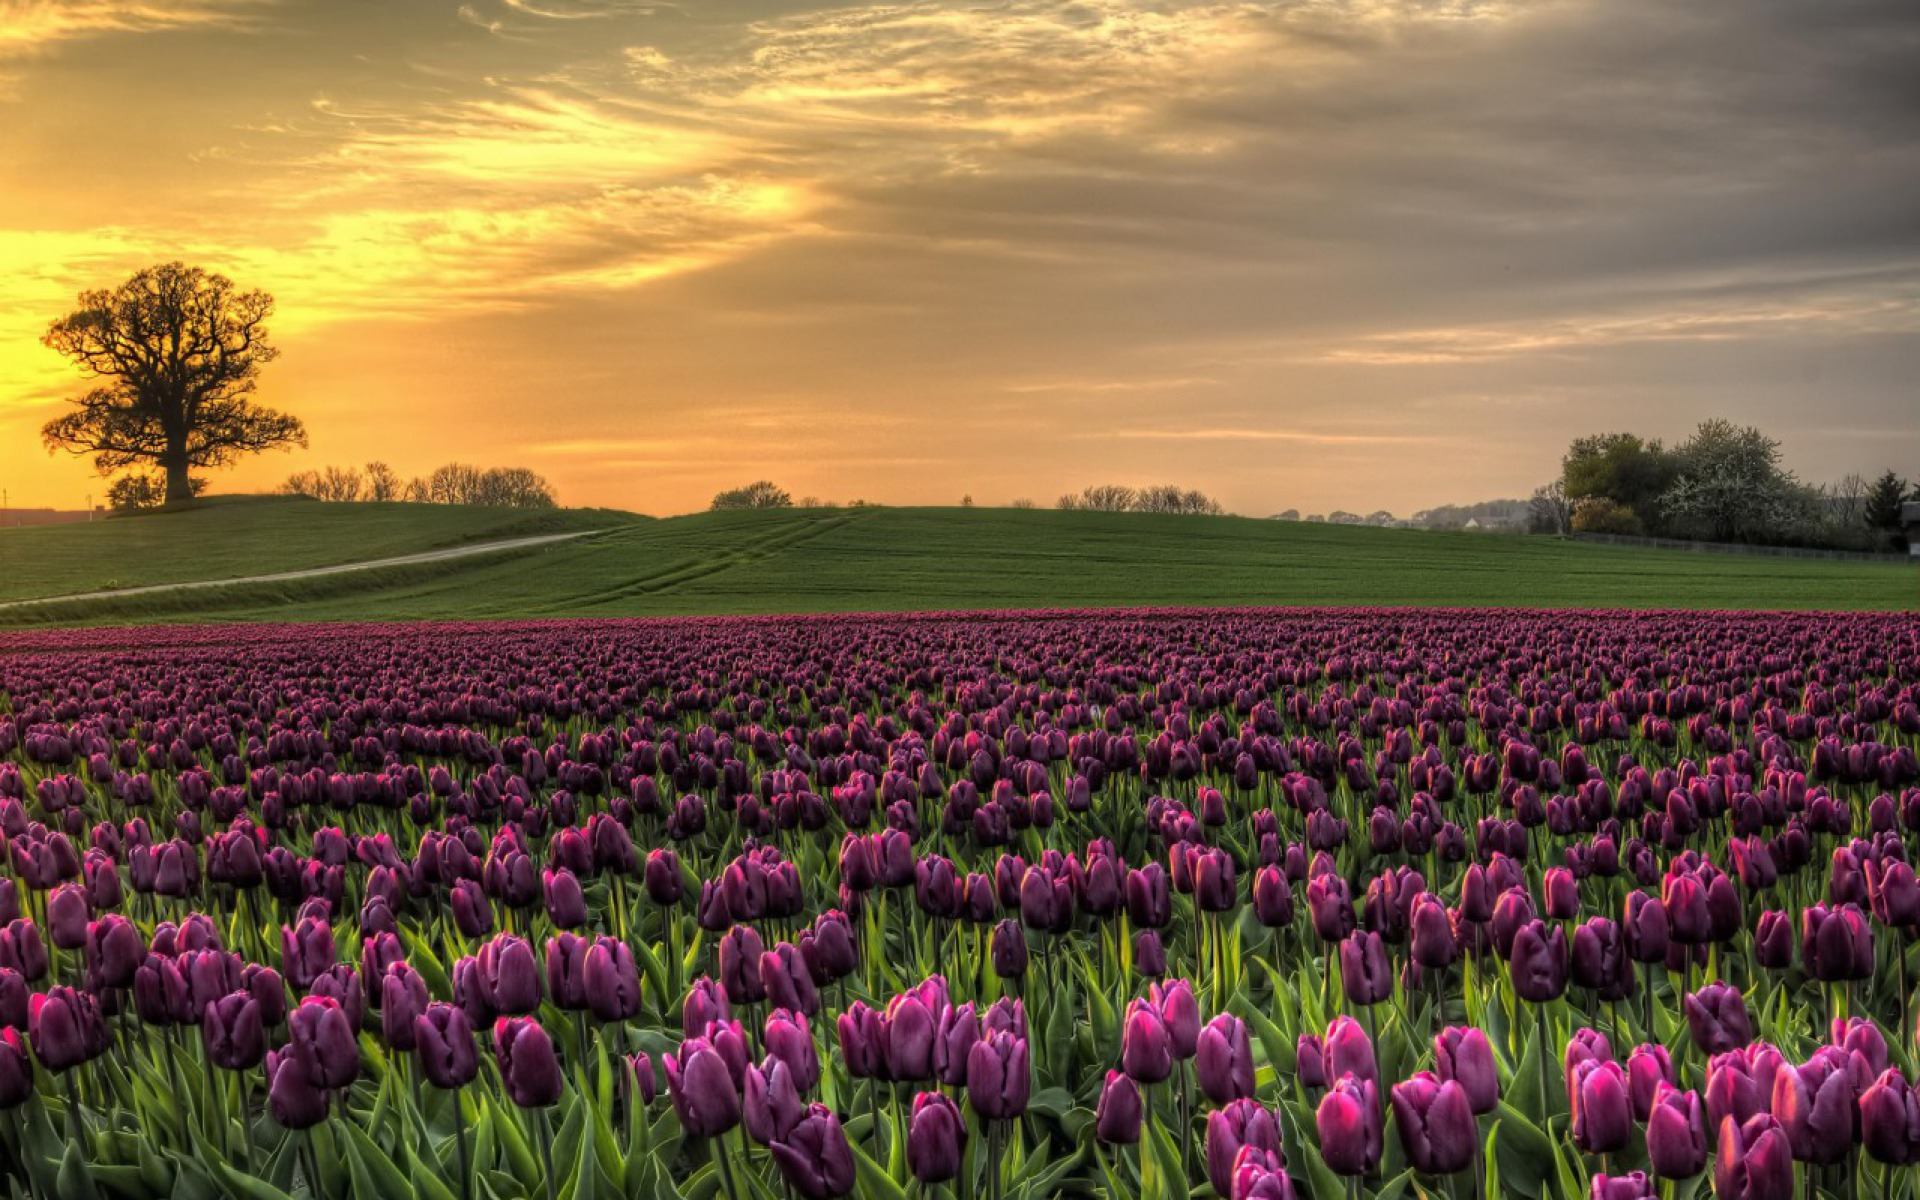 Oasis Wallpaper Iphone 5 Purple Tulips Field Wallpapers Purple Tulips Field Stock